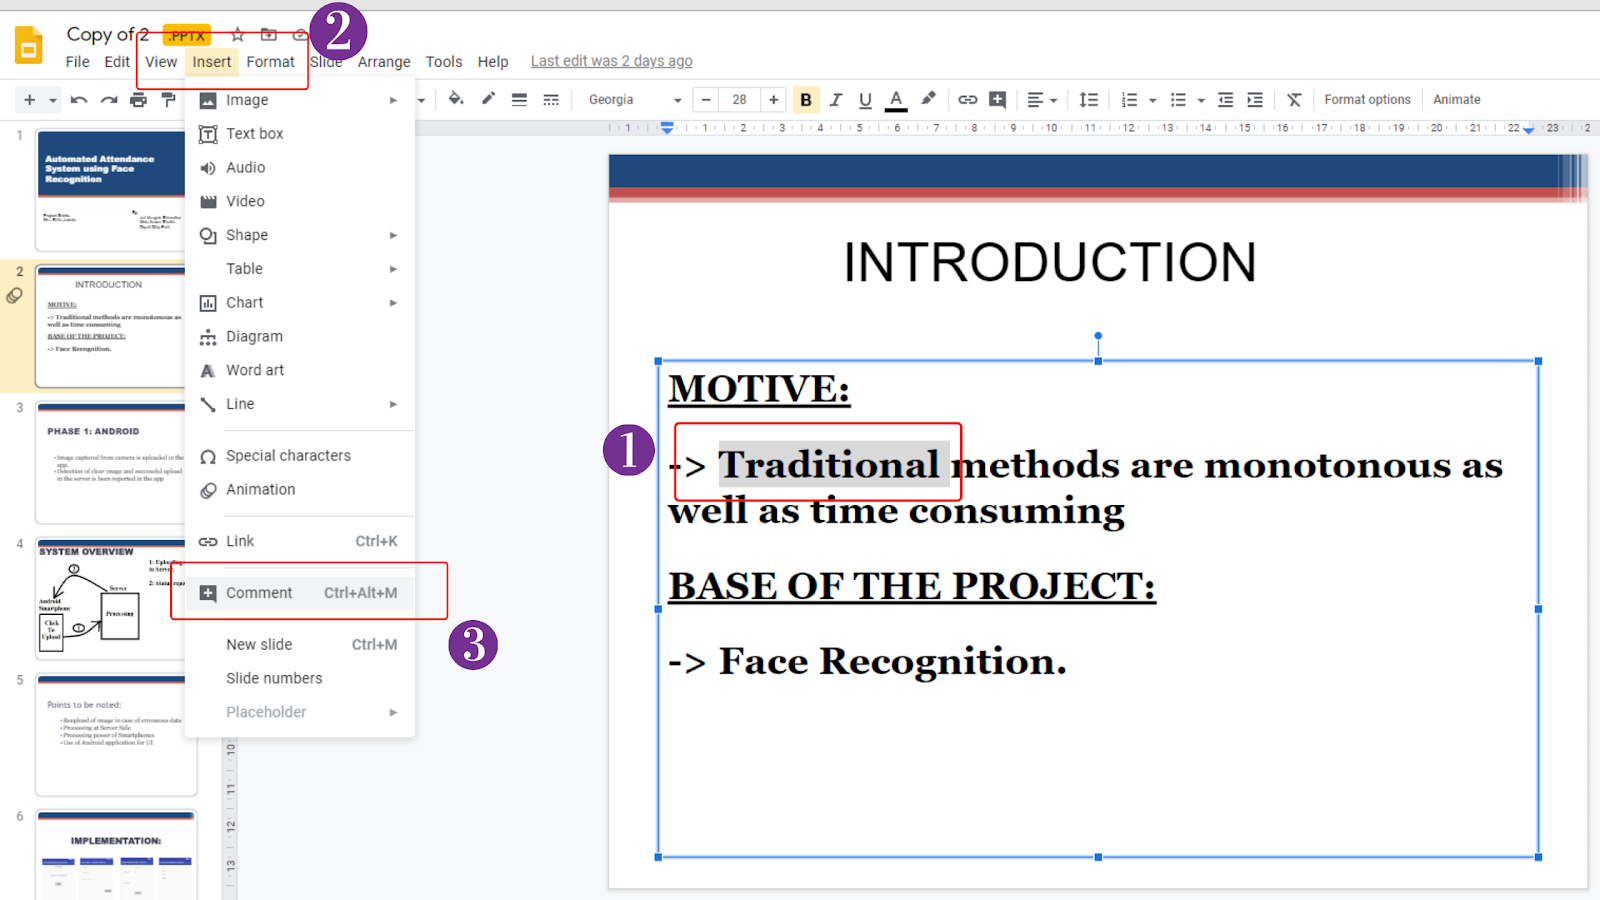 Image showcasing how to add comments in Google Slides using the Insert Tab on the Menu Bar